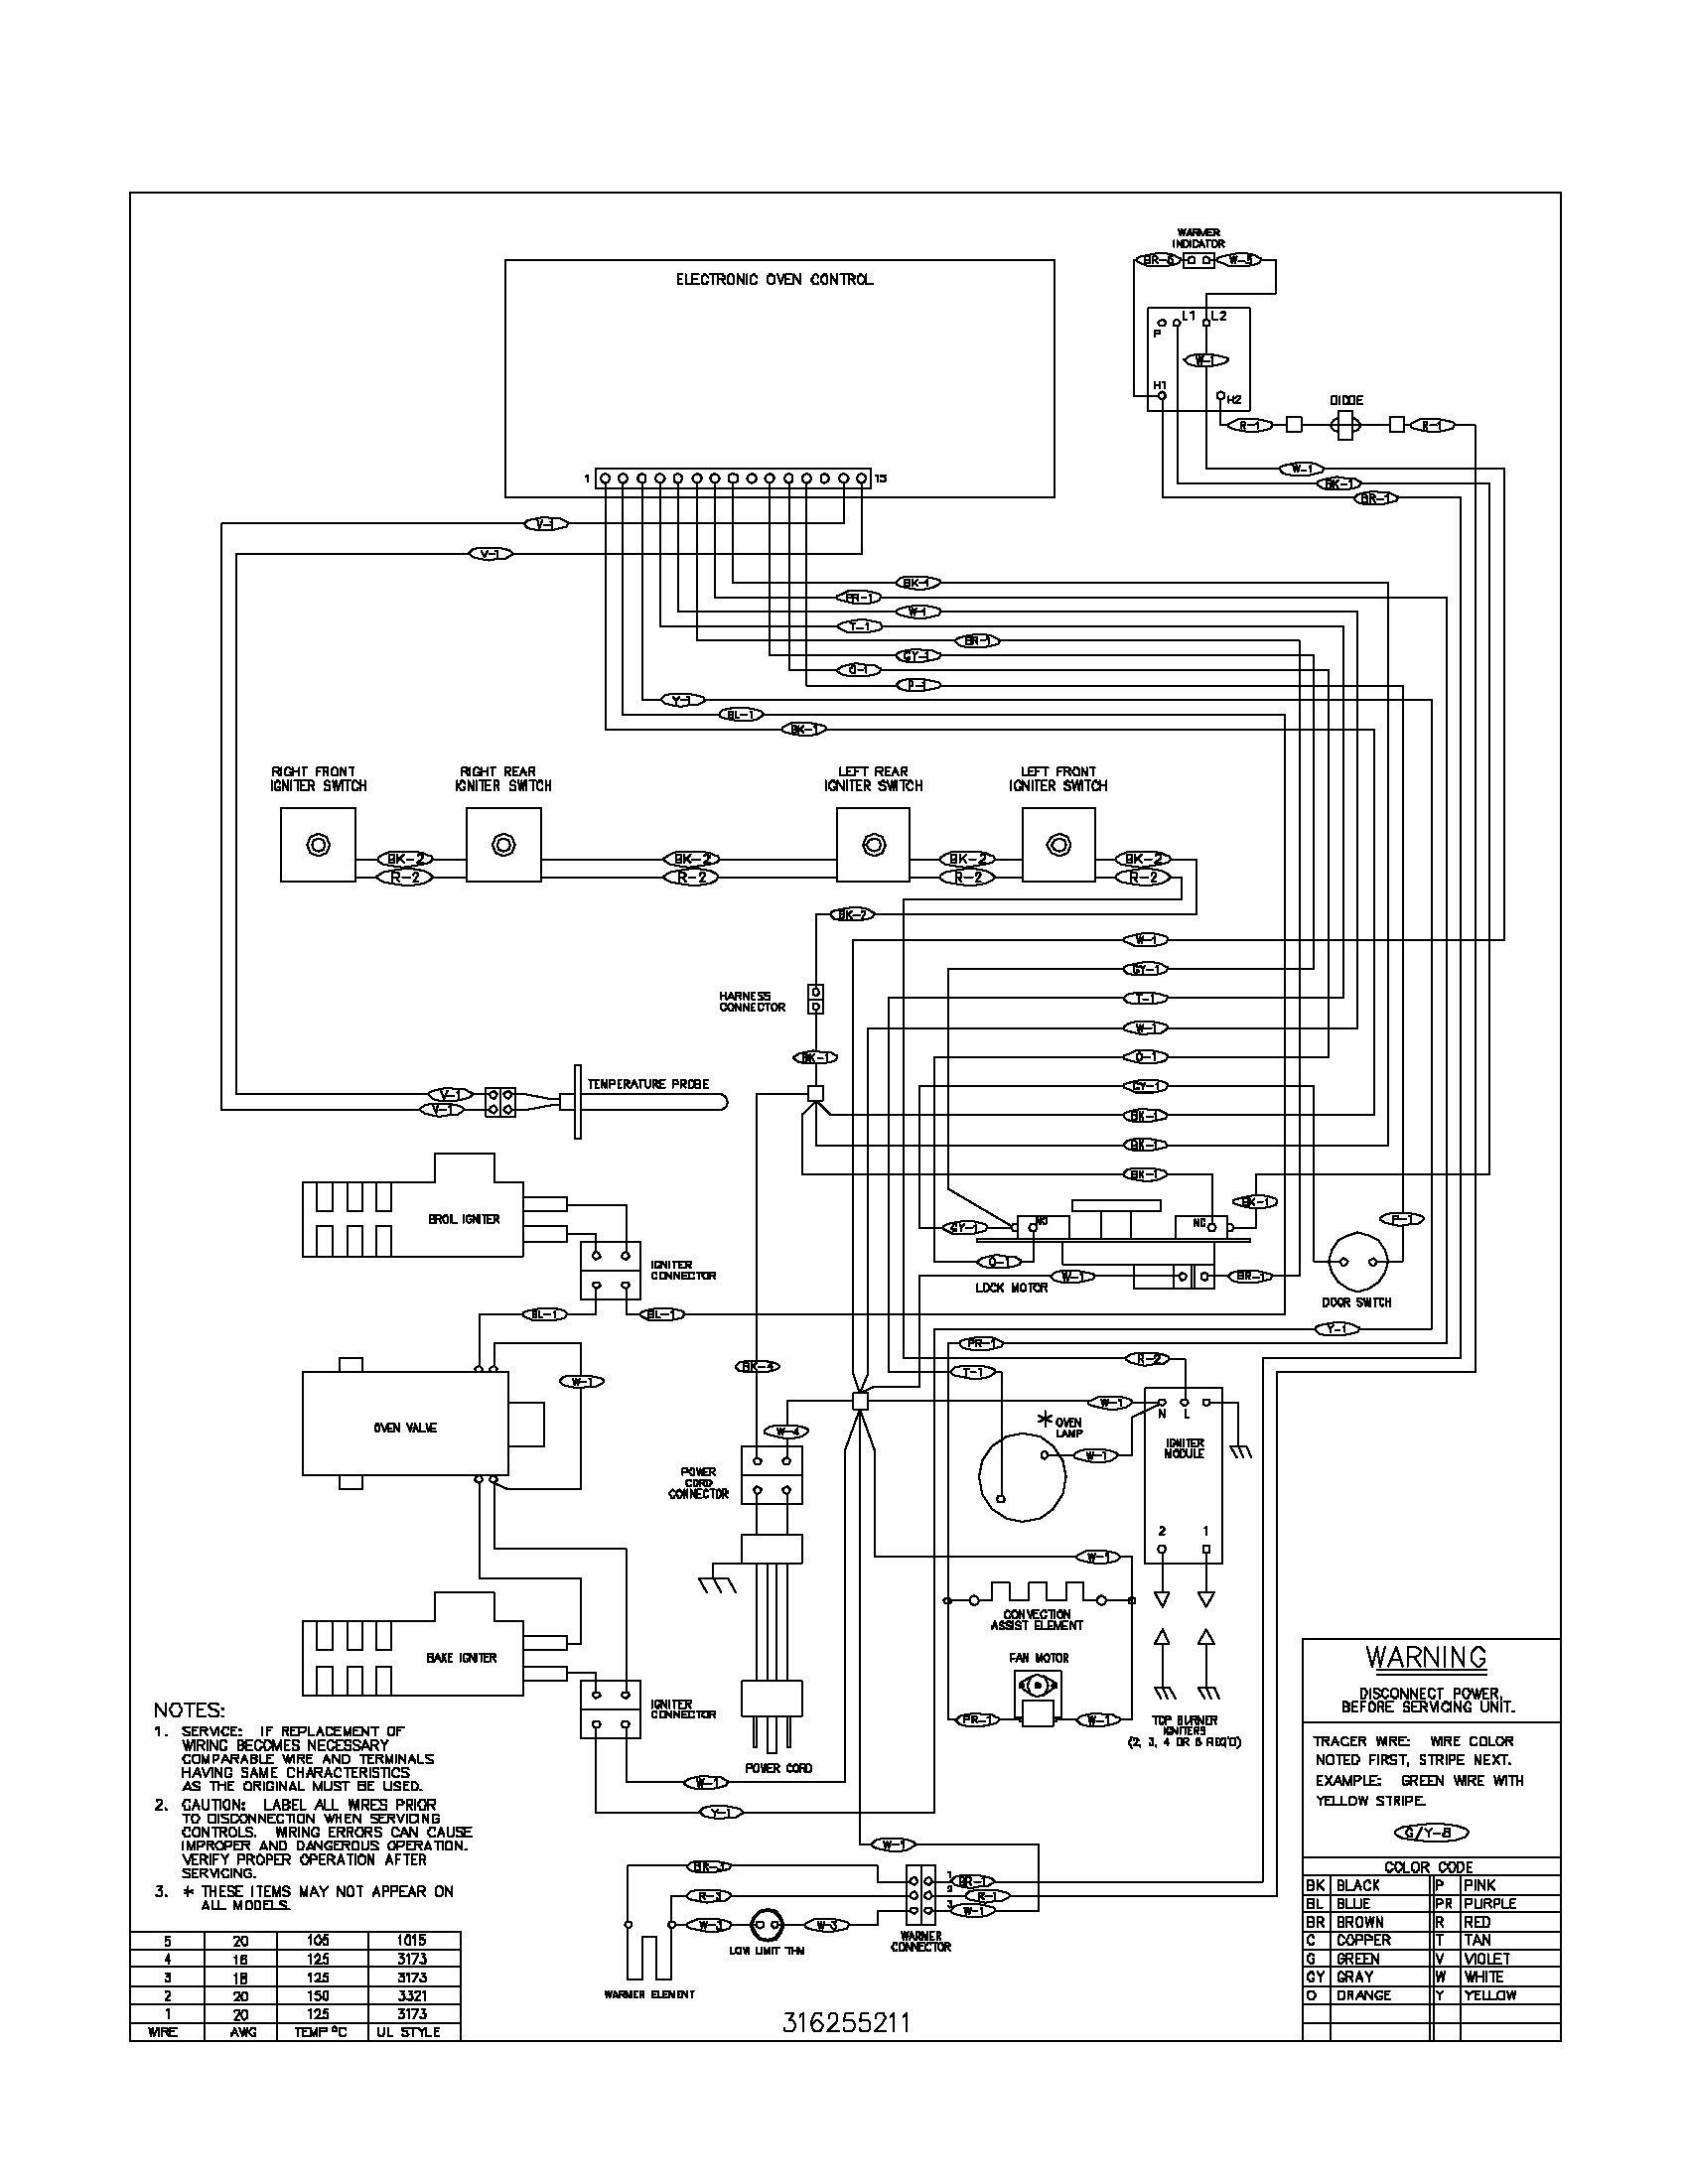 Unique Wiring Diagram For Electric Stove Outlet Diagram Diagramsample Diagramtemplate Wiringdiagram Diagra Baseboard Heater House Wiring Electrical Wiring